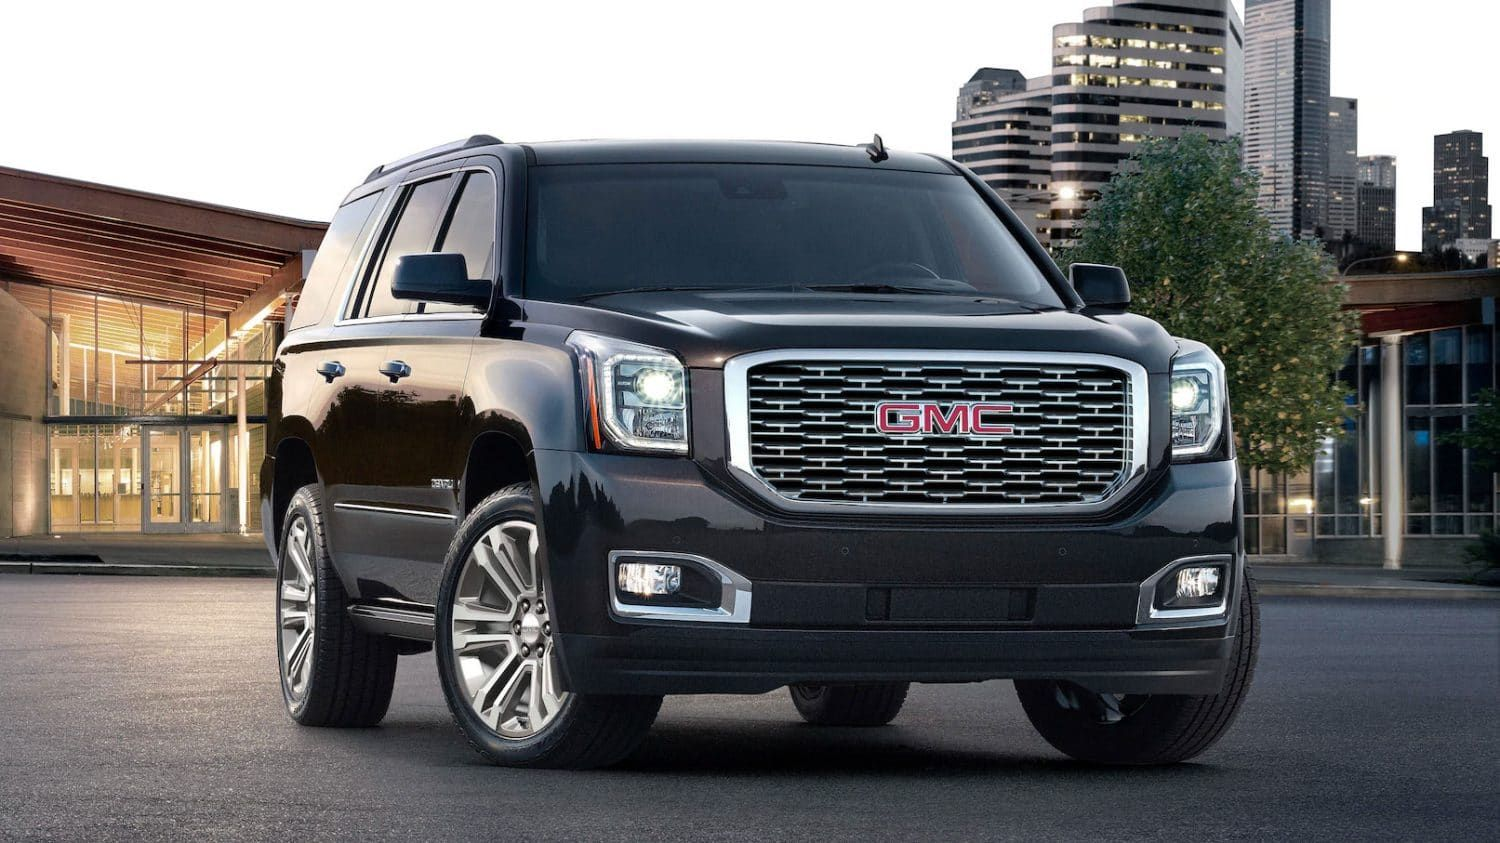 Lease Deals For Buick And Gmc Vehicles At Green Brook Buick Gmc